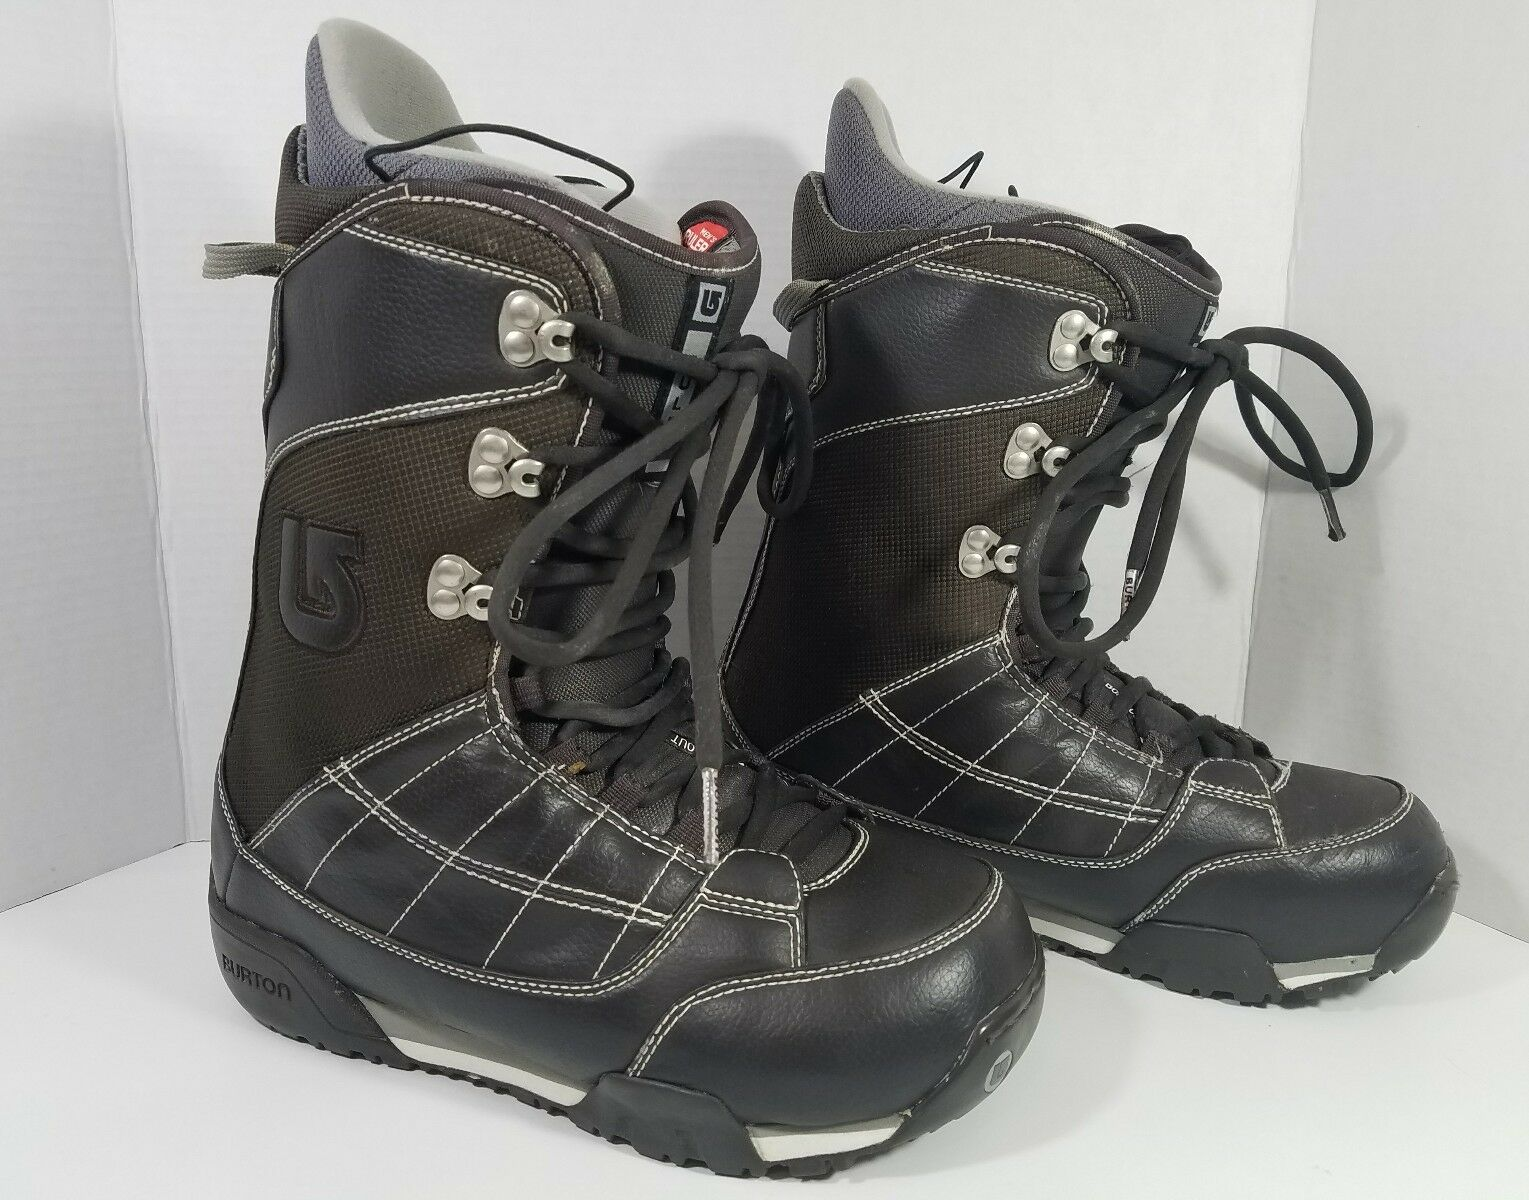 BURTON RULER MATRIX 3 Snowboard Boots Men Size 9 Brown  Bone Out NICE     manufacturers direct supply